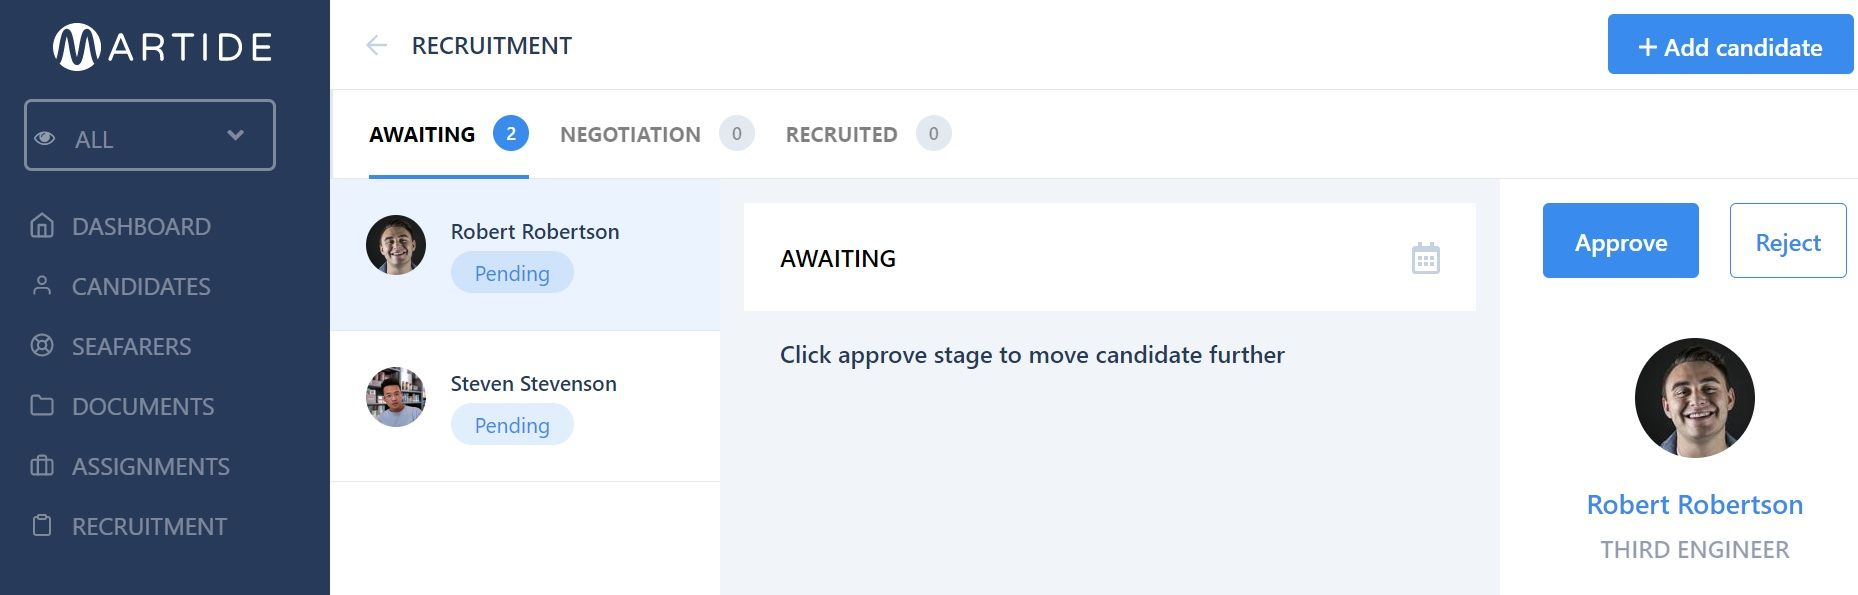 screenshot showing the candidates in a pipeline.